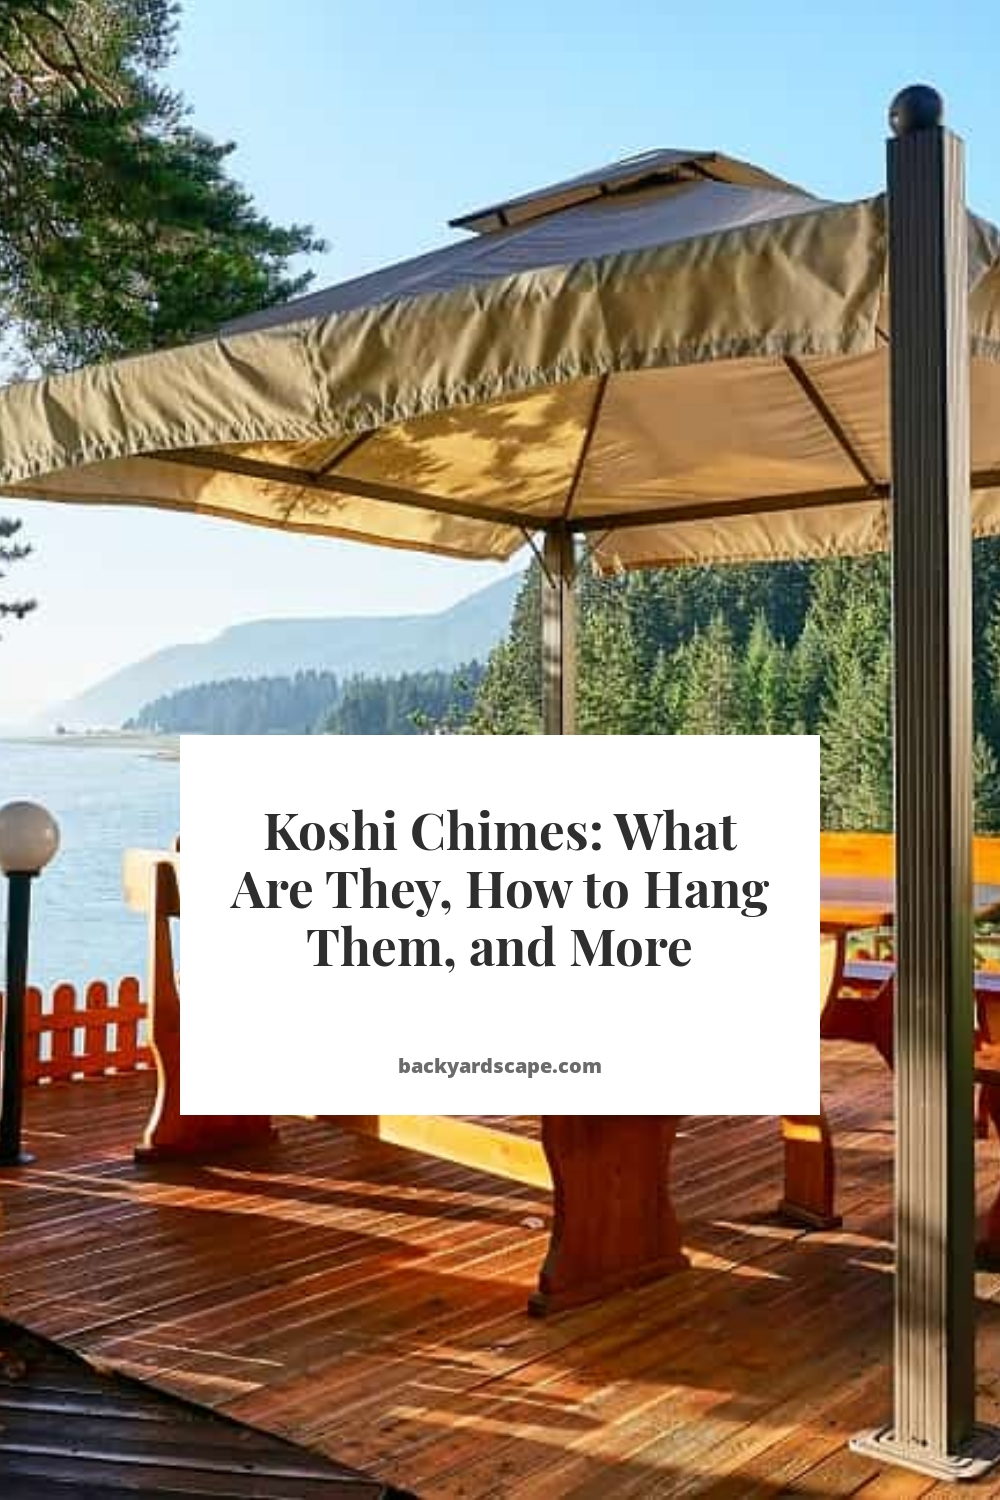 Koshi Chimes: What Are They, How to Hang Them, and More